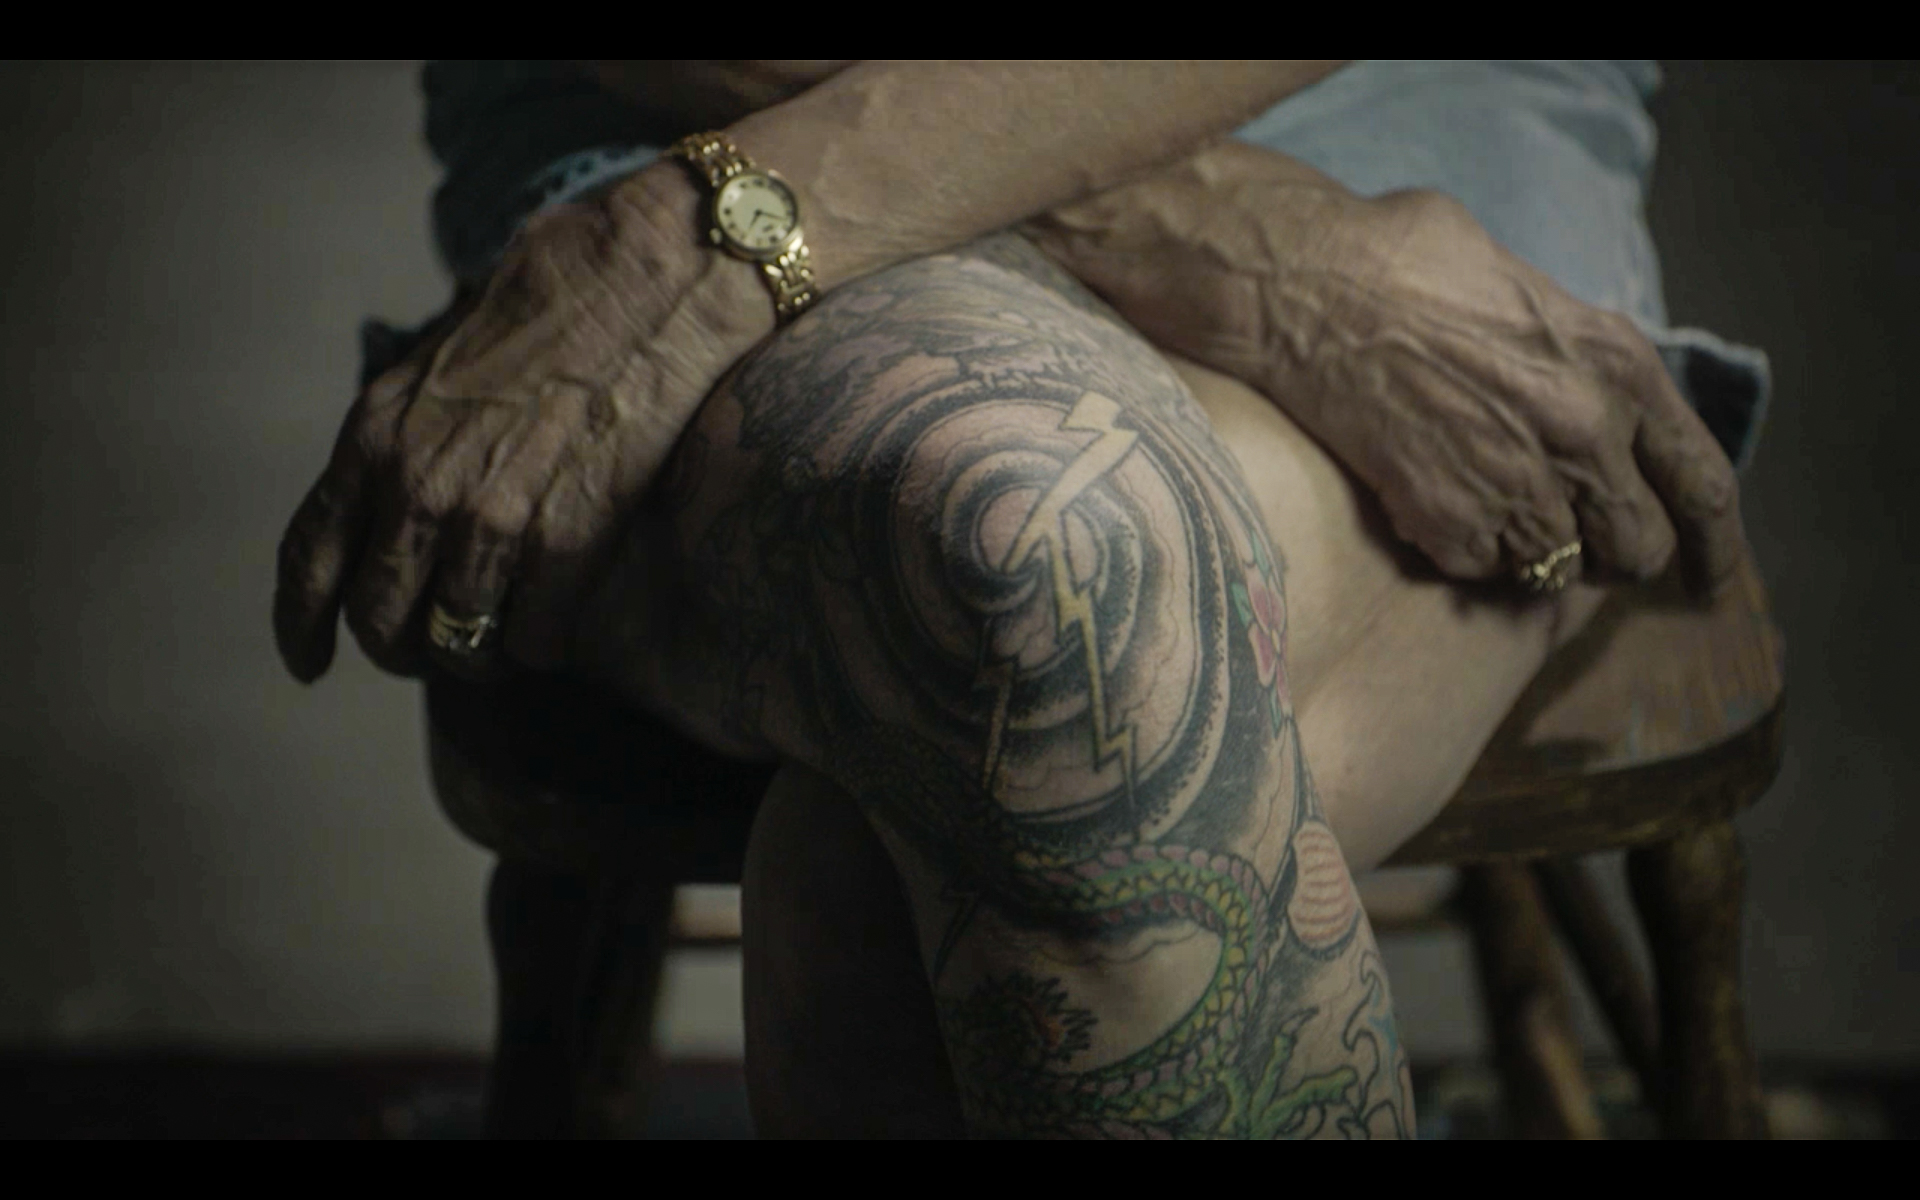 Will You Regret That Tattoo When Youre Old A Short Documentary